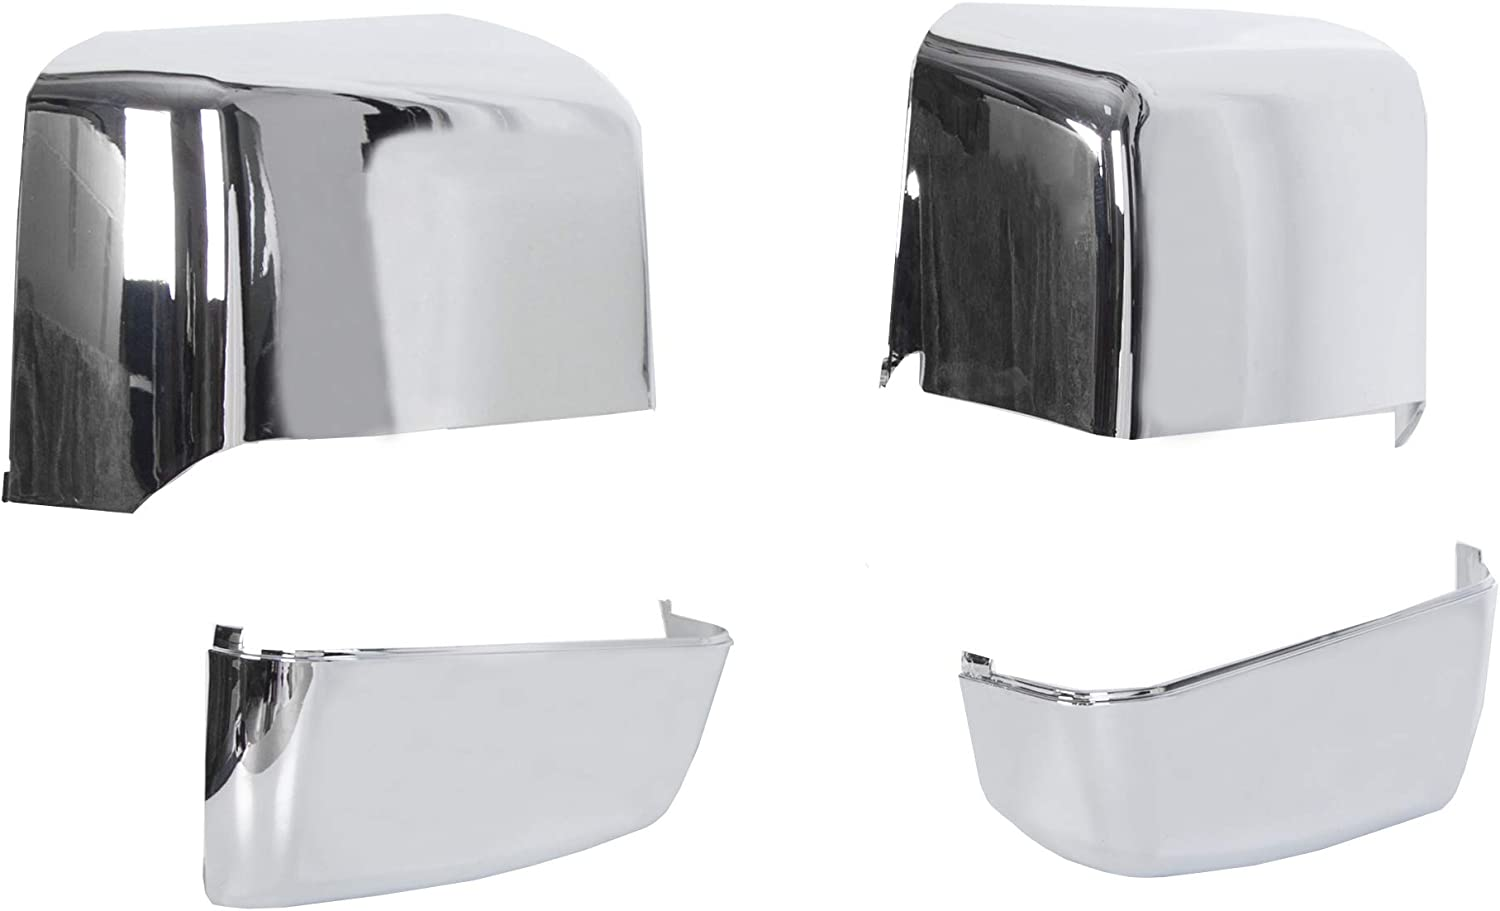 23444119 ECOTRIC NEW Pair Triple Chrome Plated Tow Mirror Cap Cover Compatible with 2014-2019 GM Chevy Silverado GMC Sierra Pickup Truck Replacement For 23444125 23444126 23444120